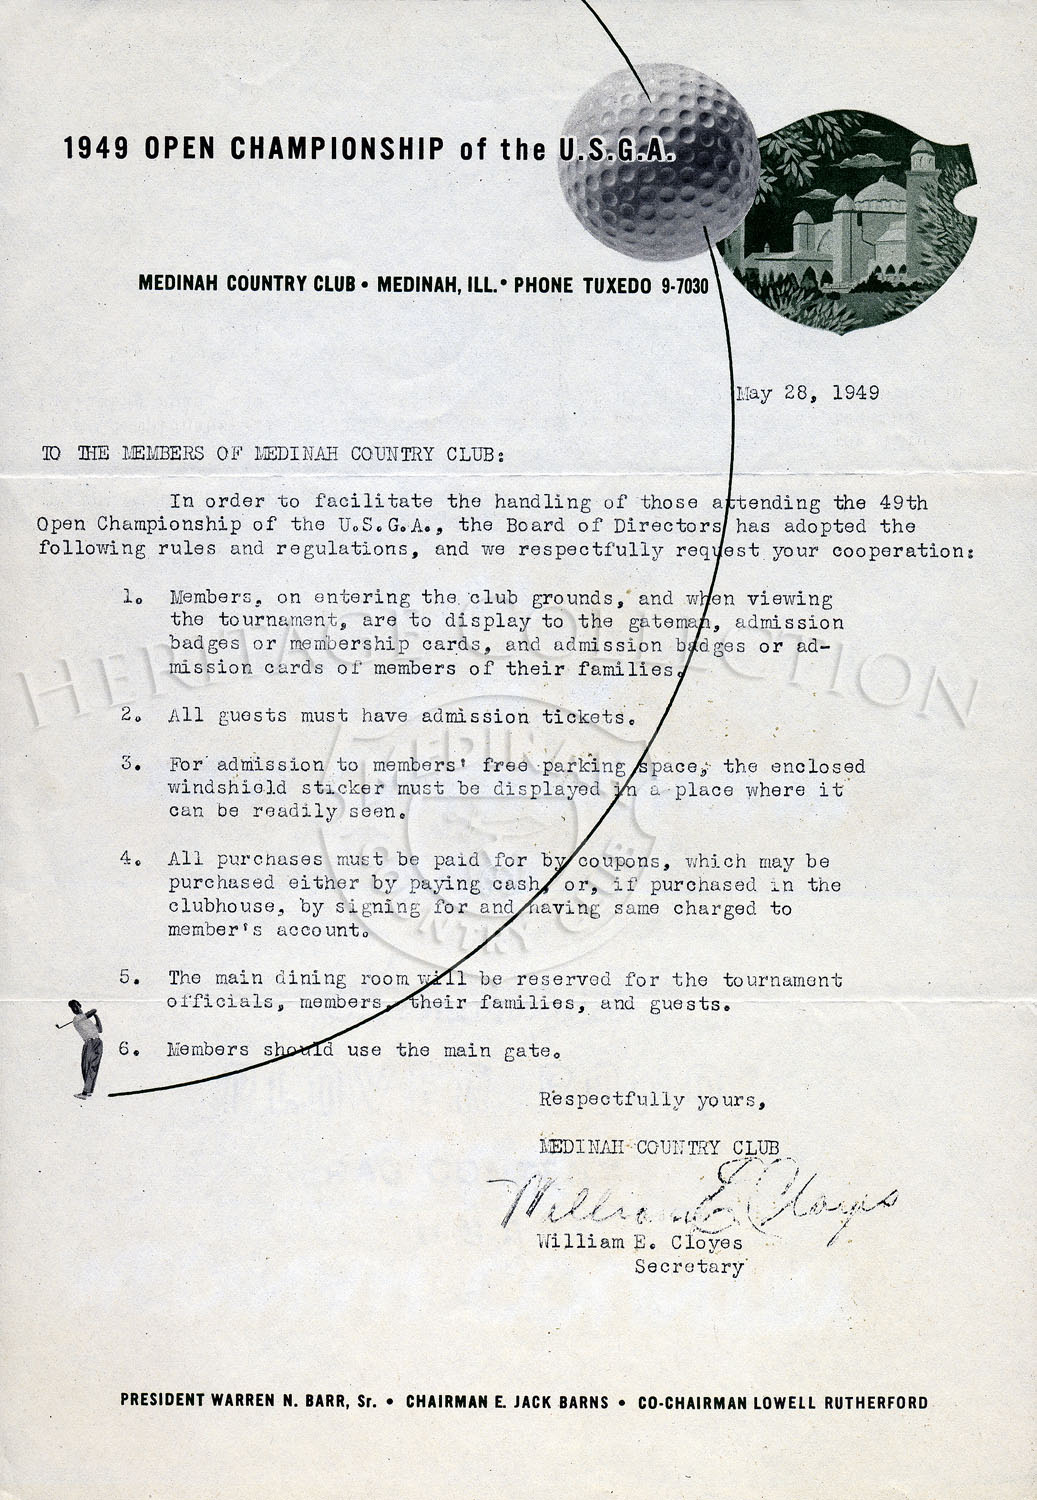 May 28, 1949 letter to Medinah Country Club members from William E. Cloyes, Medinah Secretary, regarding those attending the 49th Open Championship of the U.S.G.A.